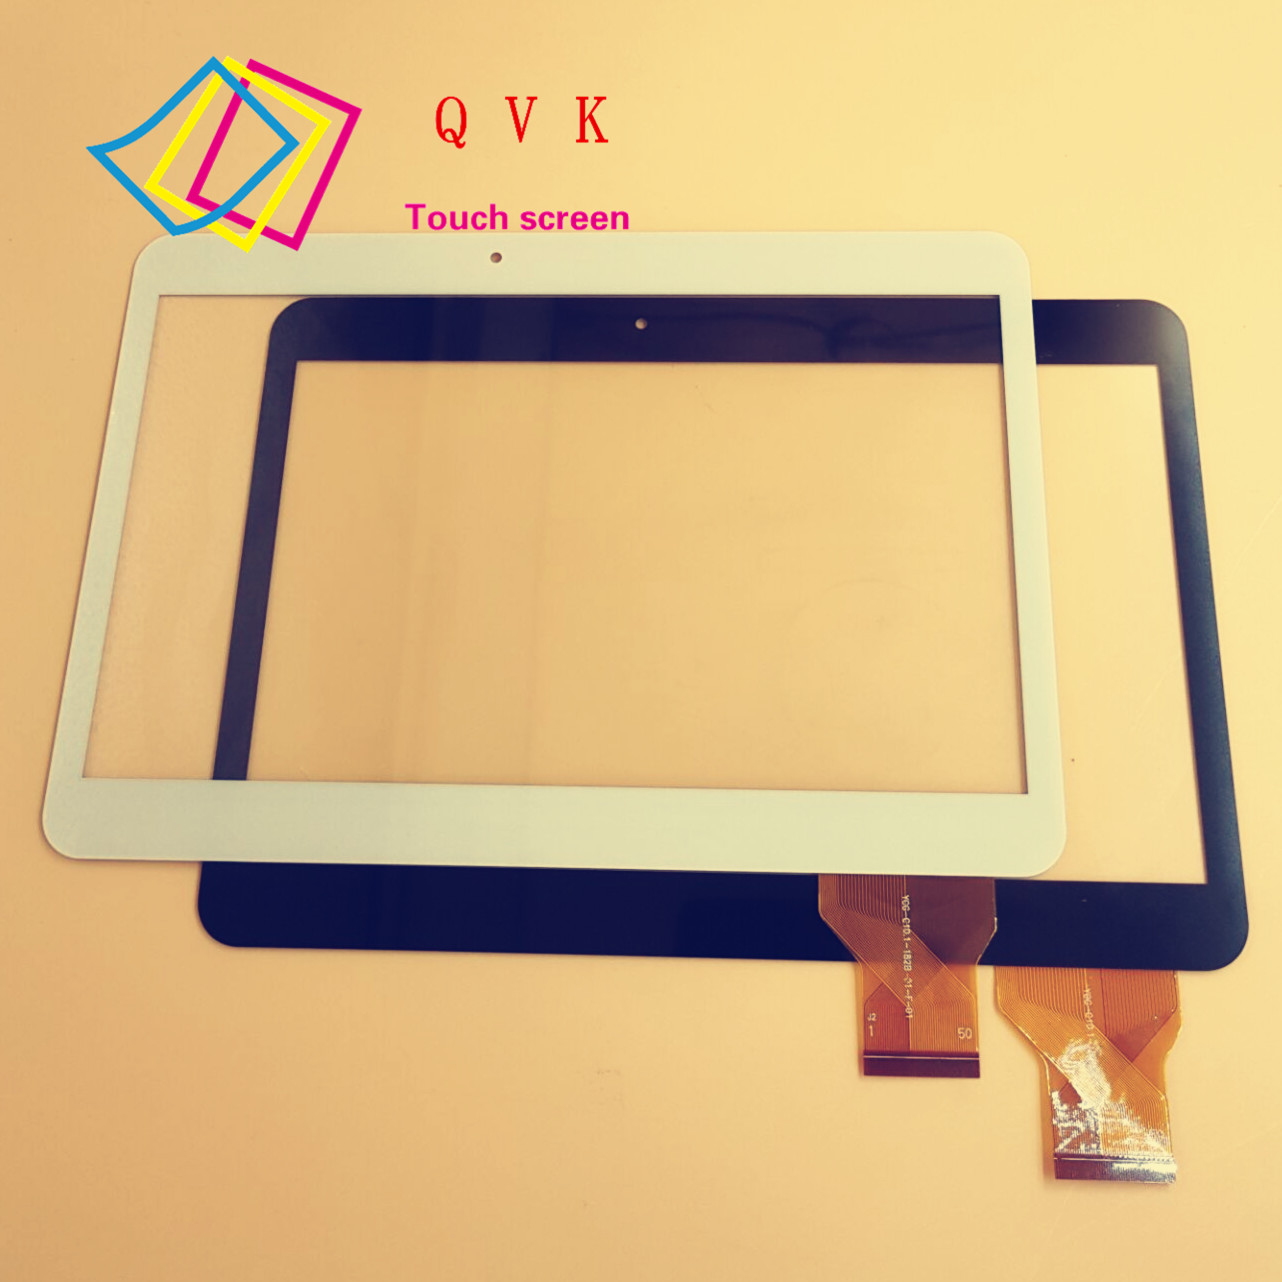 10.1 Inch For IRBIS TZ11 TZ12 TX14 TX19 tablet pc capacitive touch screen panel digitizer glass VTC5010A28-FPC-1.0 for nomi c10102 10 1 inch touch screen tablet computer multi touch capacitive panel handwriting screen rp 400a 10 1 fpc a3